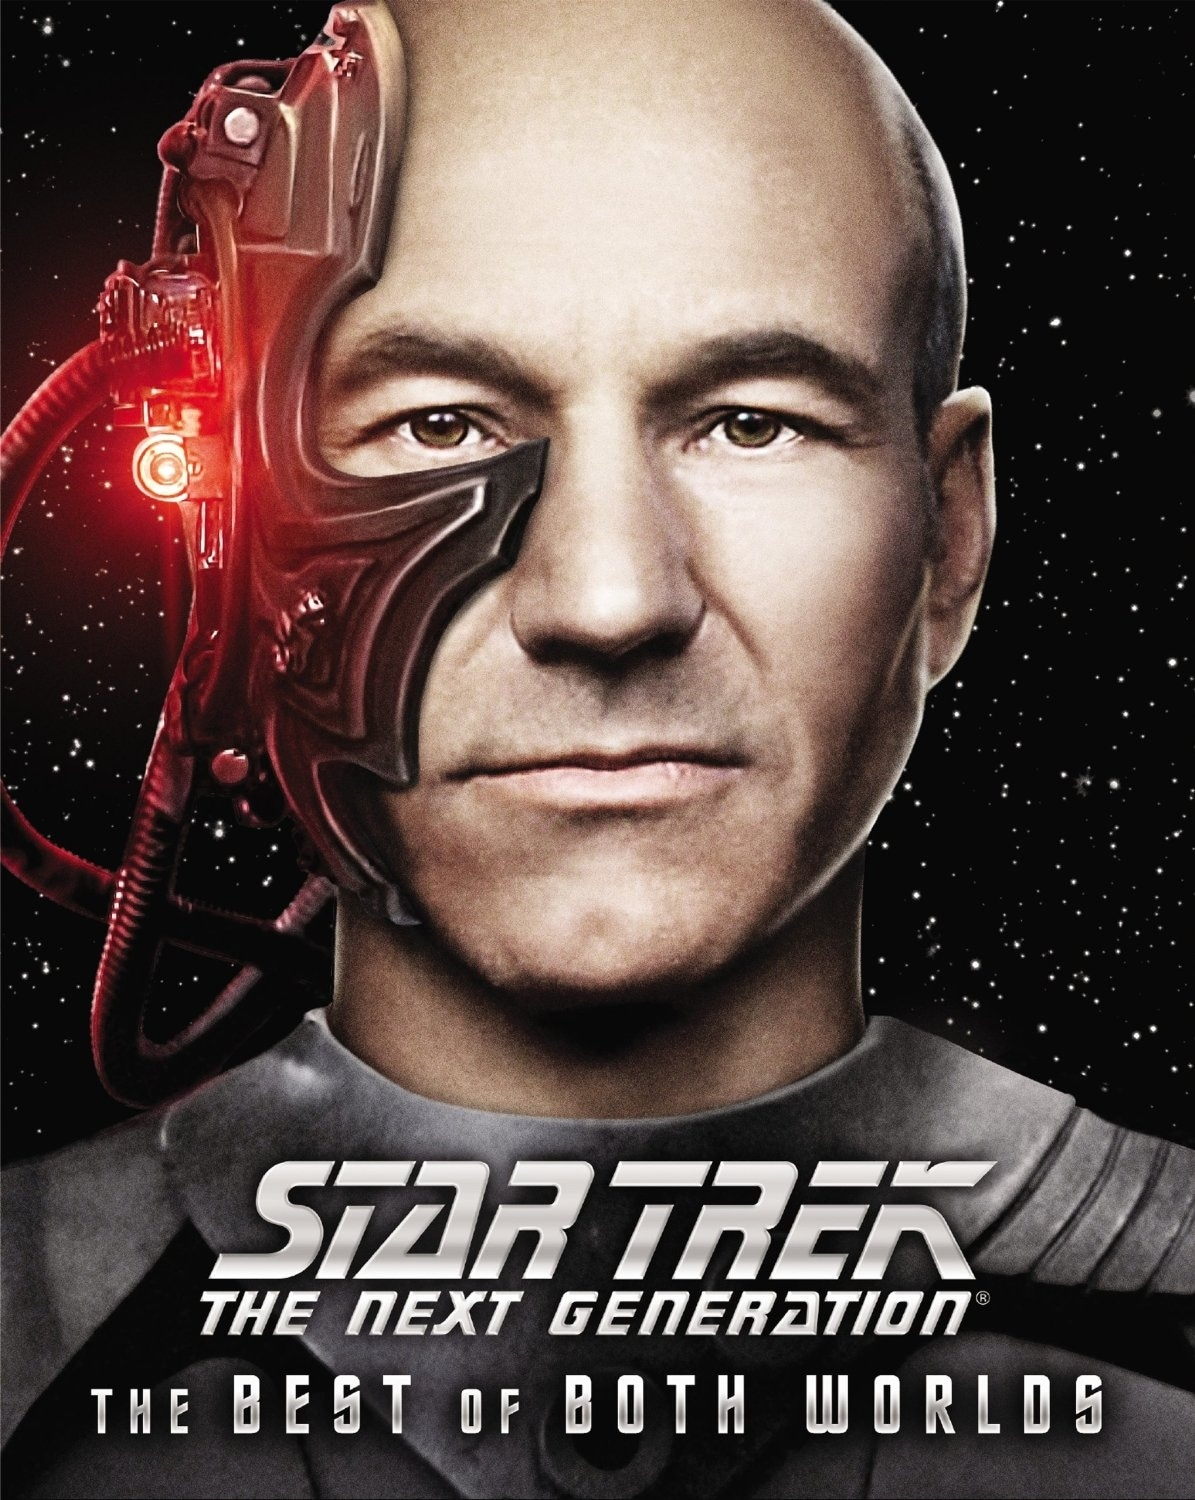 Be A Trekkie And Go See Star Trek: The Next Generation Best of Both Worlds